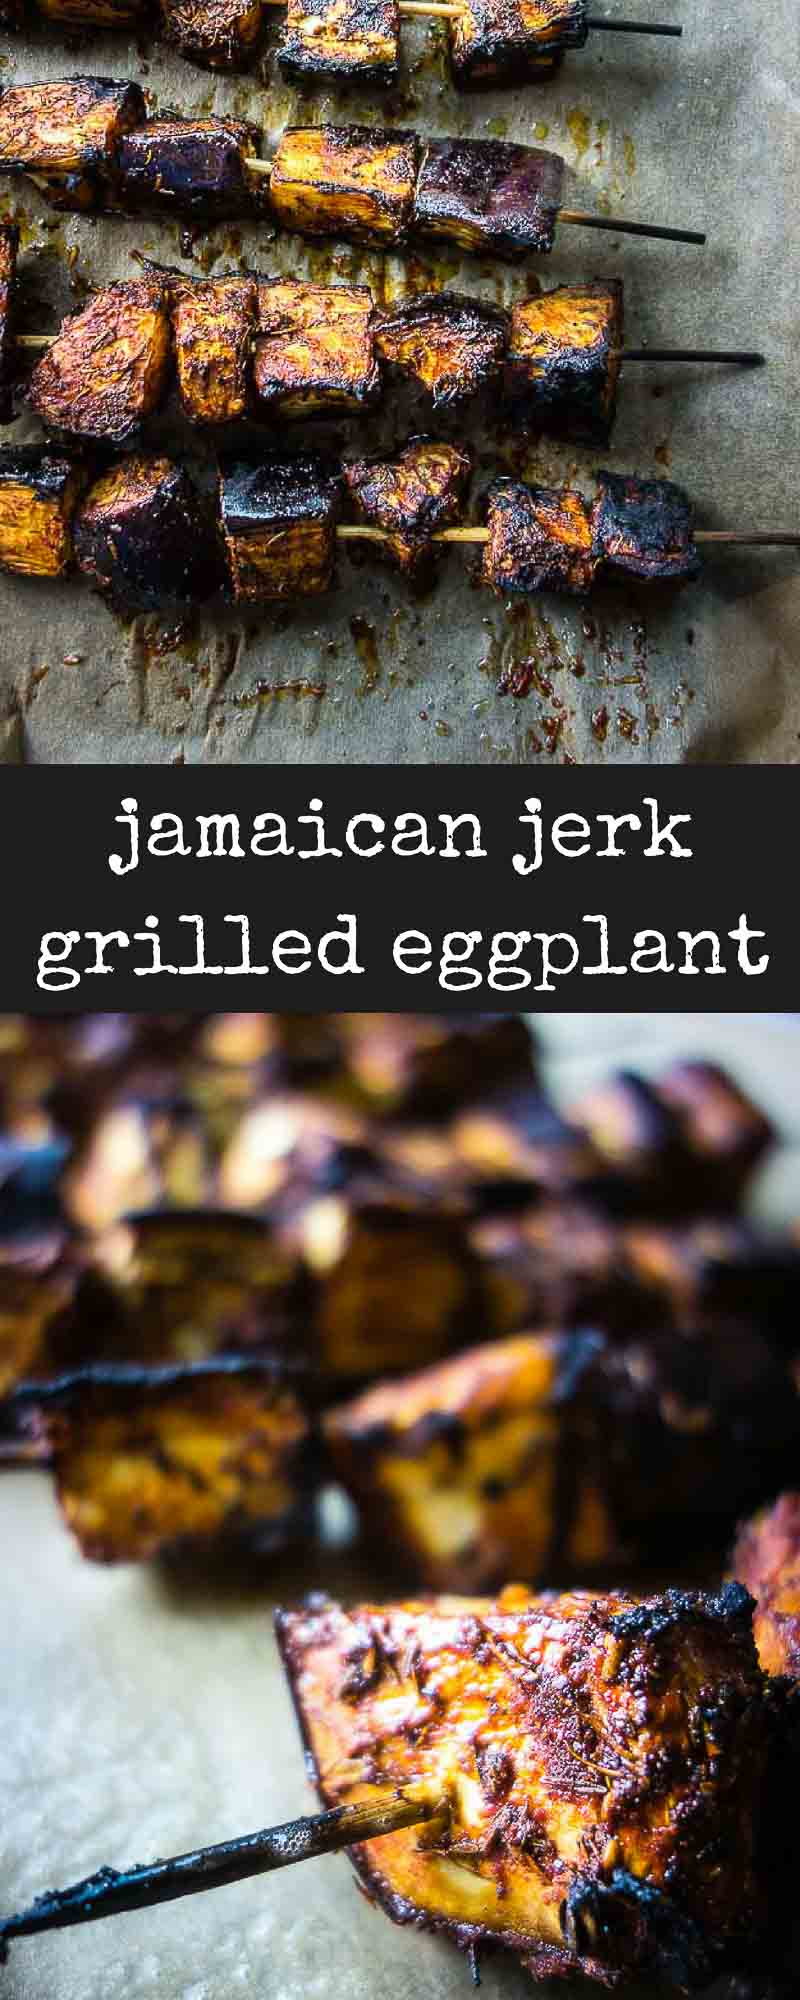 Jamaican Jerk Grilled Eggplant Recipe